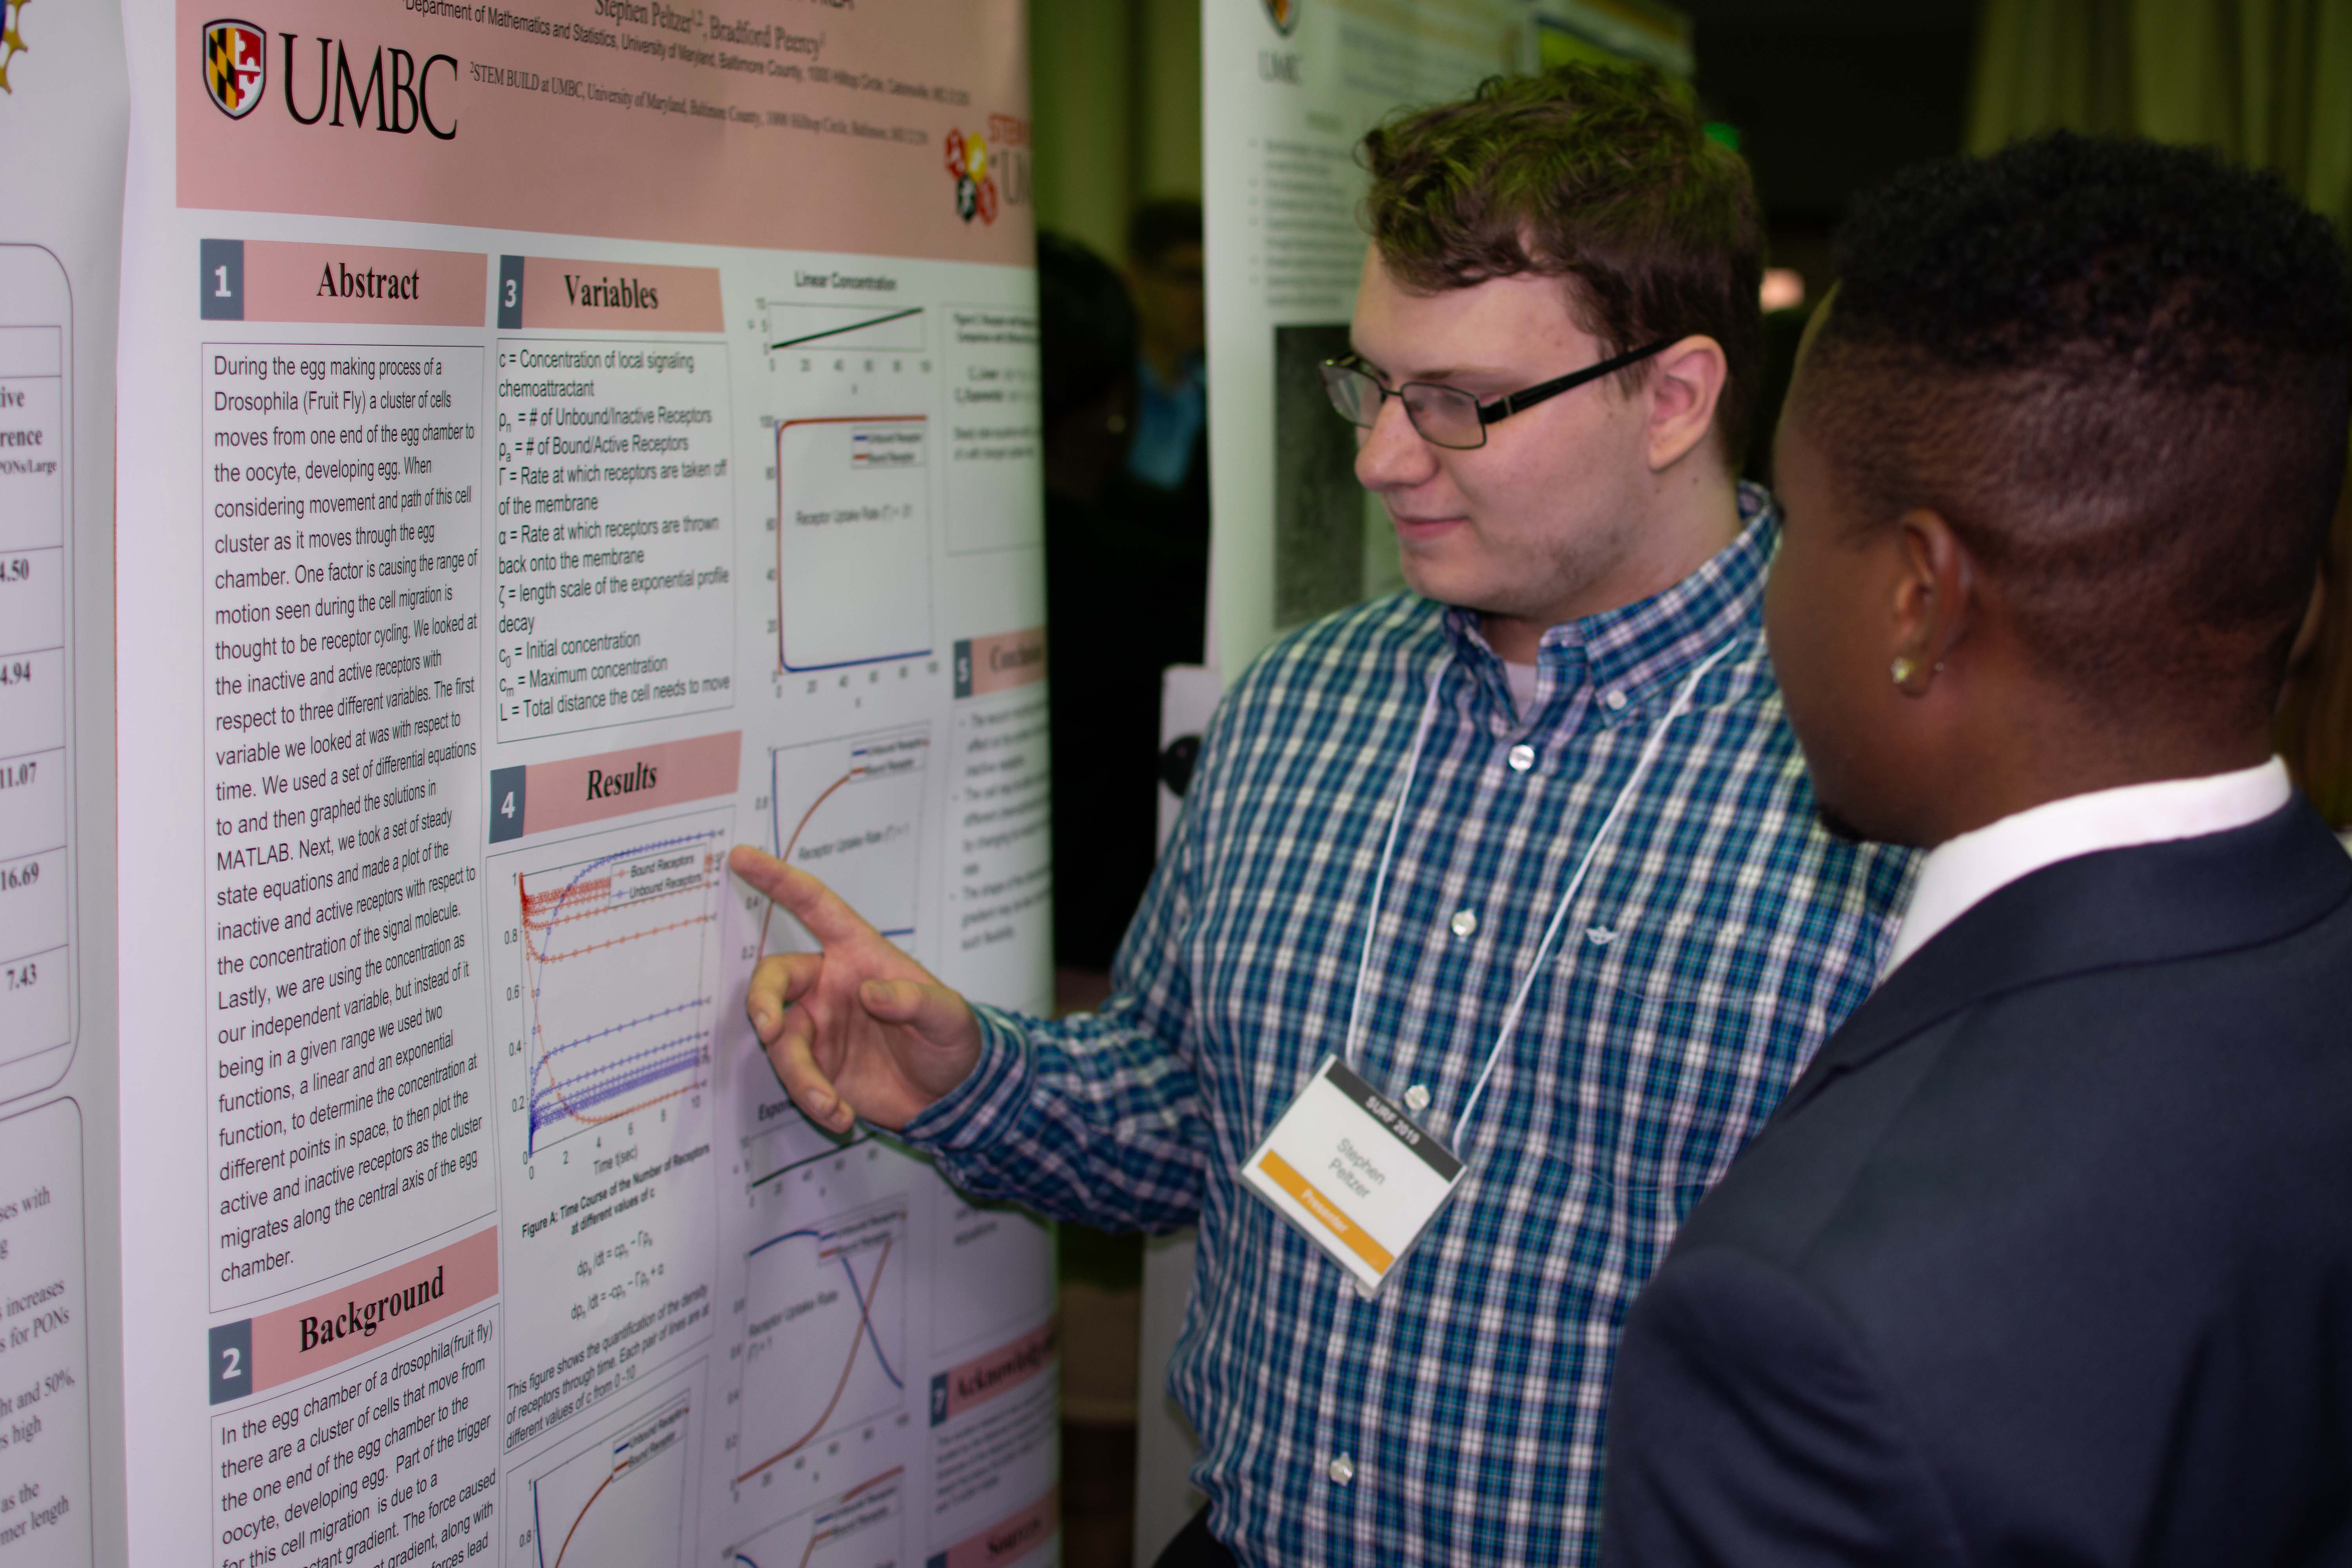 A UMBC BUILD Trainee explains his research poster to another BUILD Trainee.